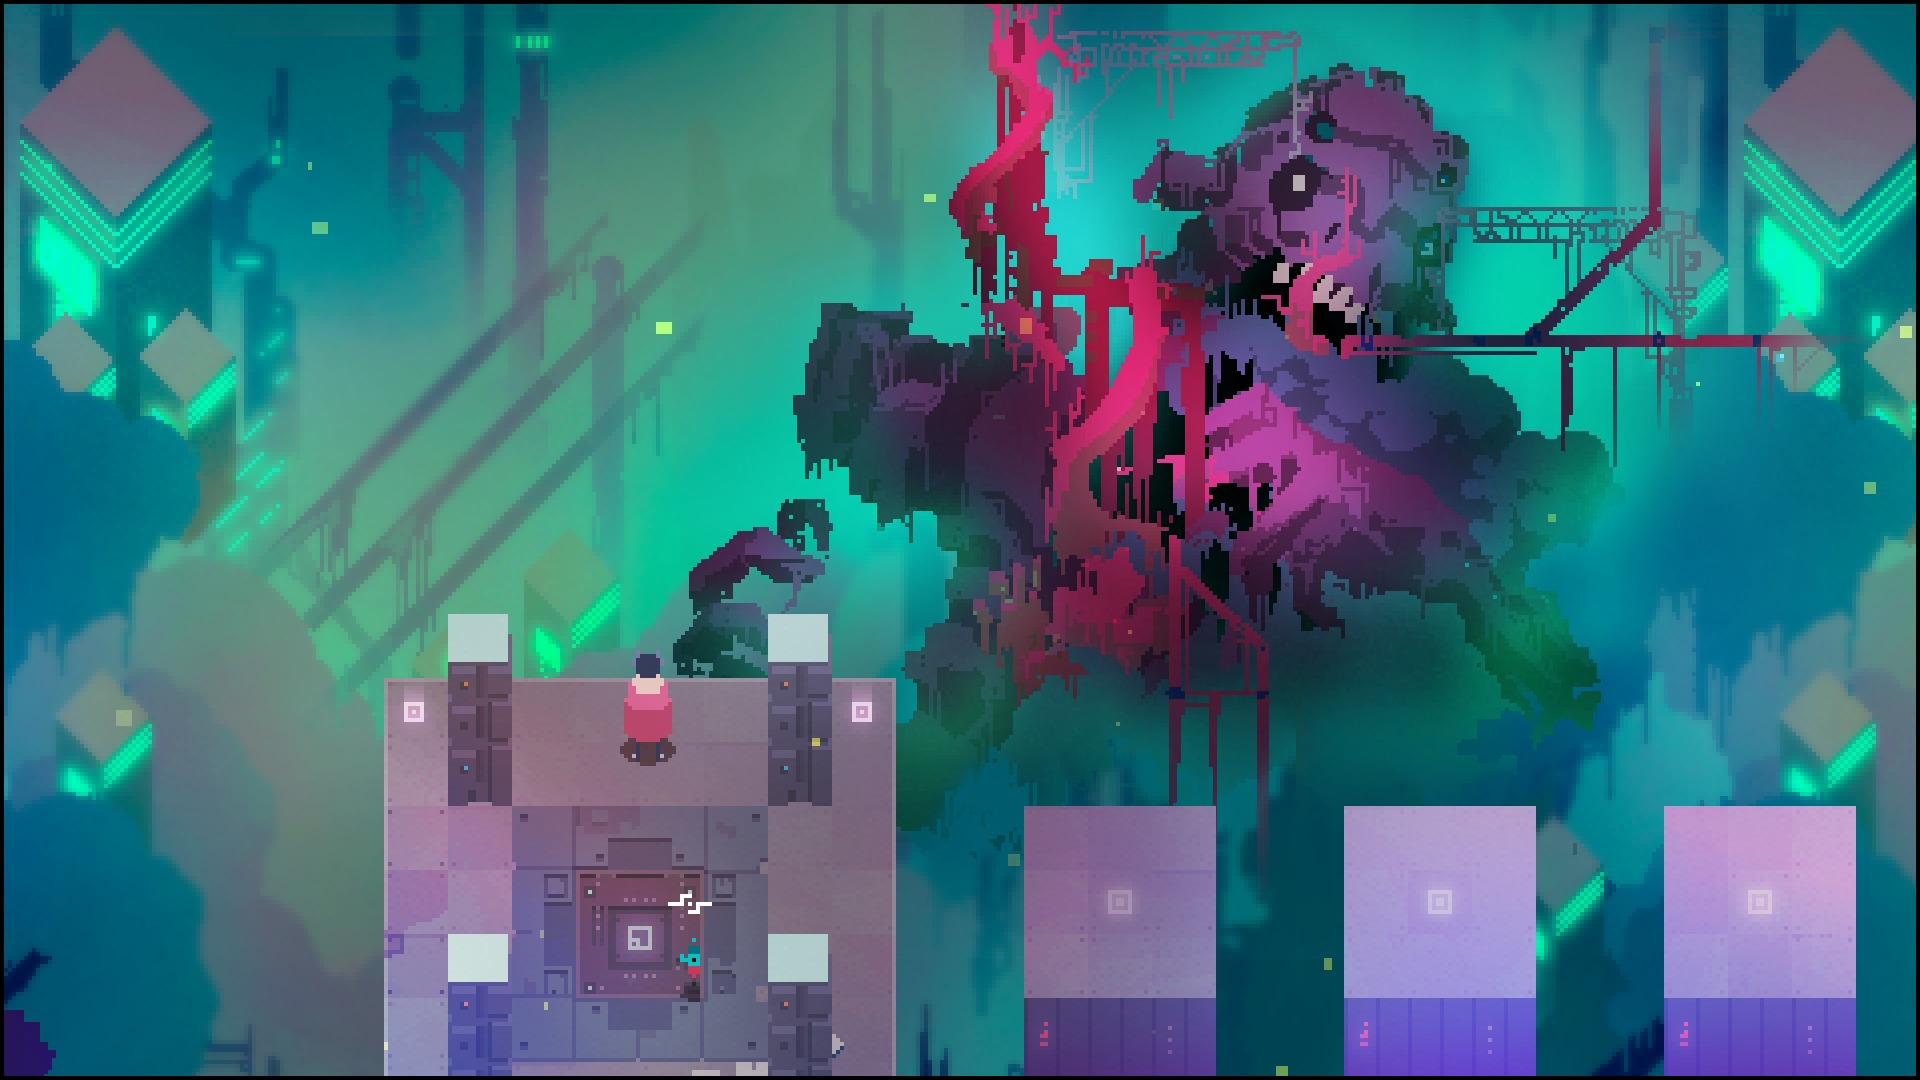 Rpg Hyper Light Drifter Now Available For Iphone And Ipad Devices